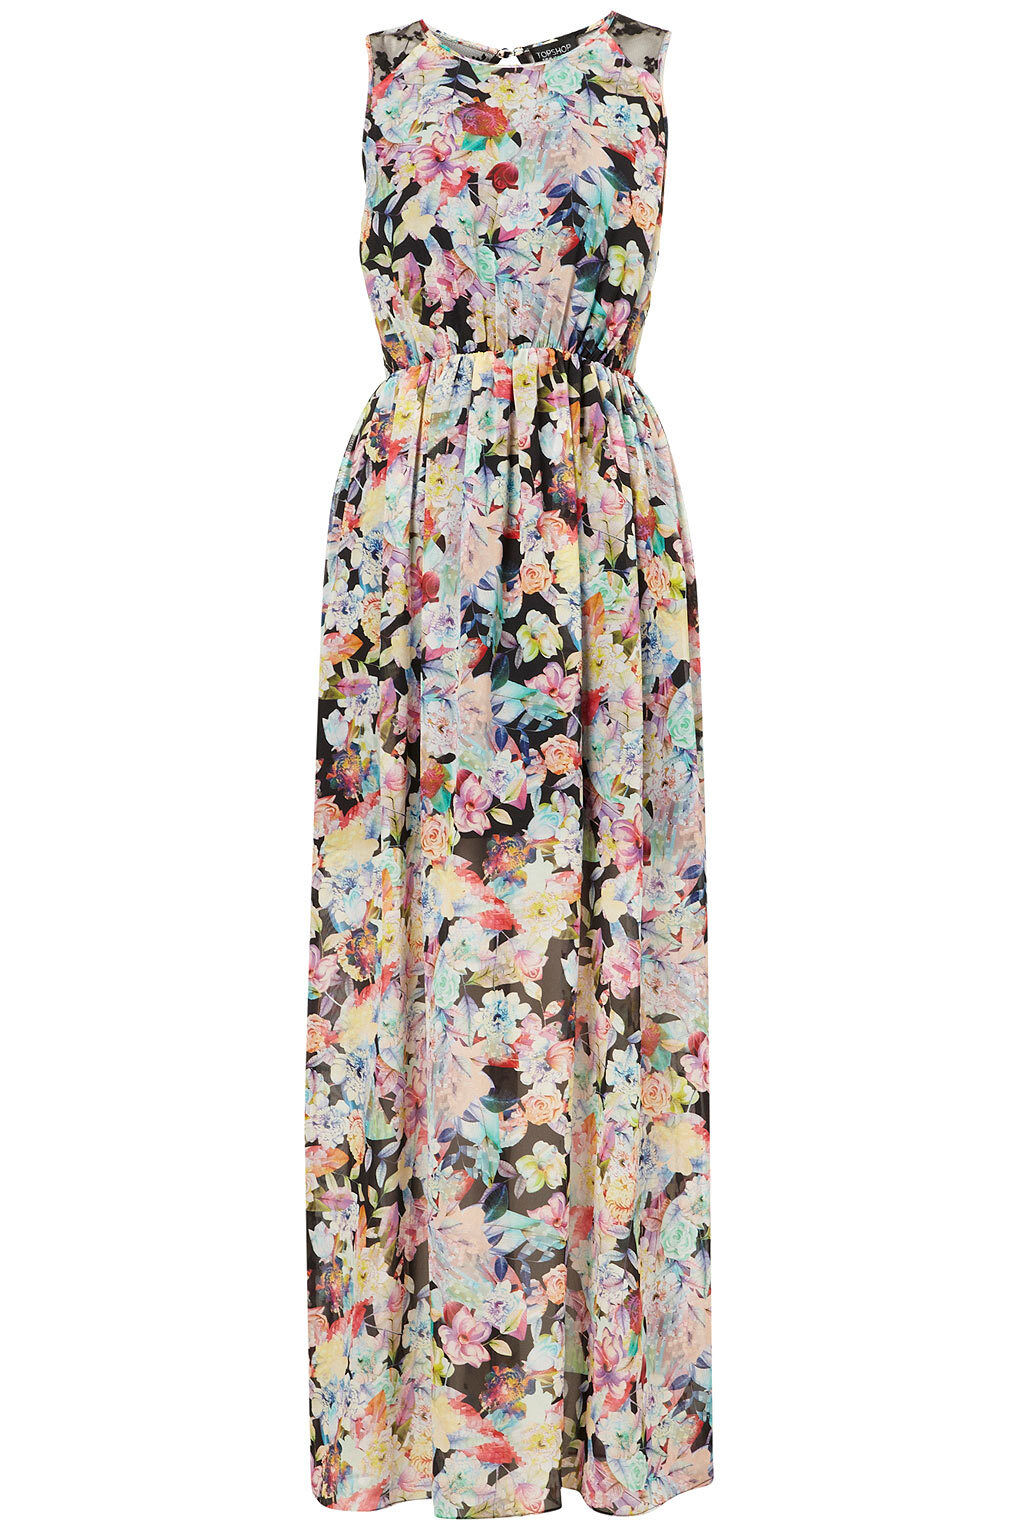 Topshop Floral Print Mesh Lace Maxi Dress Body con Tunic UK 8 EURO 36 US 4 BNWT